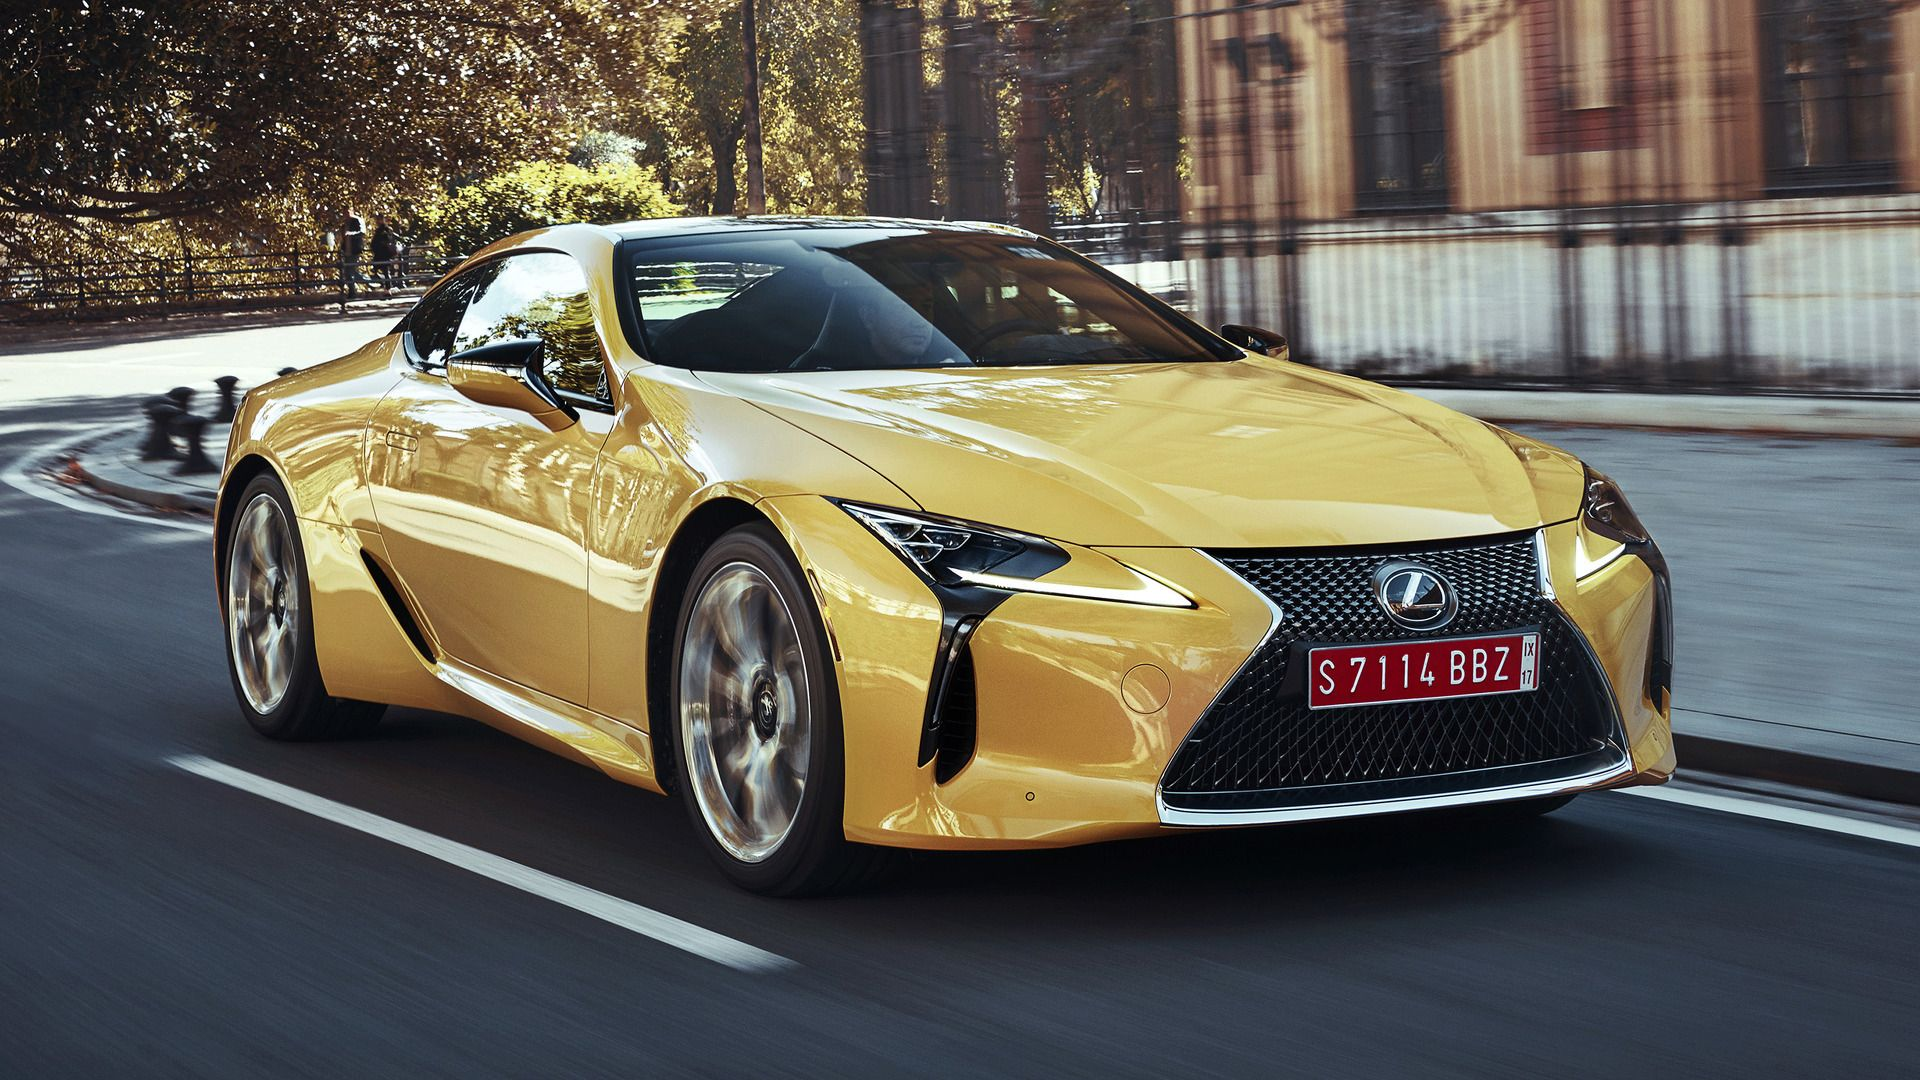 The Lc 500 Starts At 92 000 While The Lc 500h Begins From 96 510 With Both Optionally Available With Several Packages Bundling Lots Lexus Lc Lexus Lfa Lexus